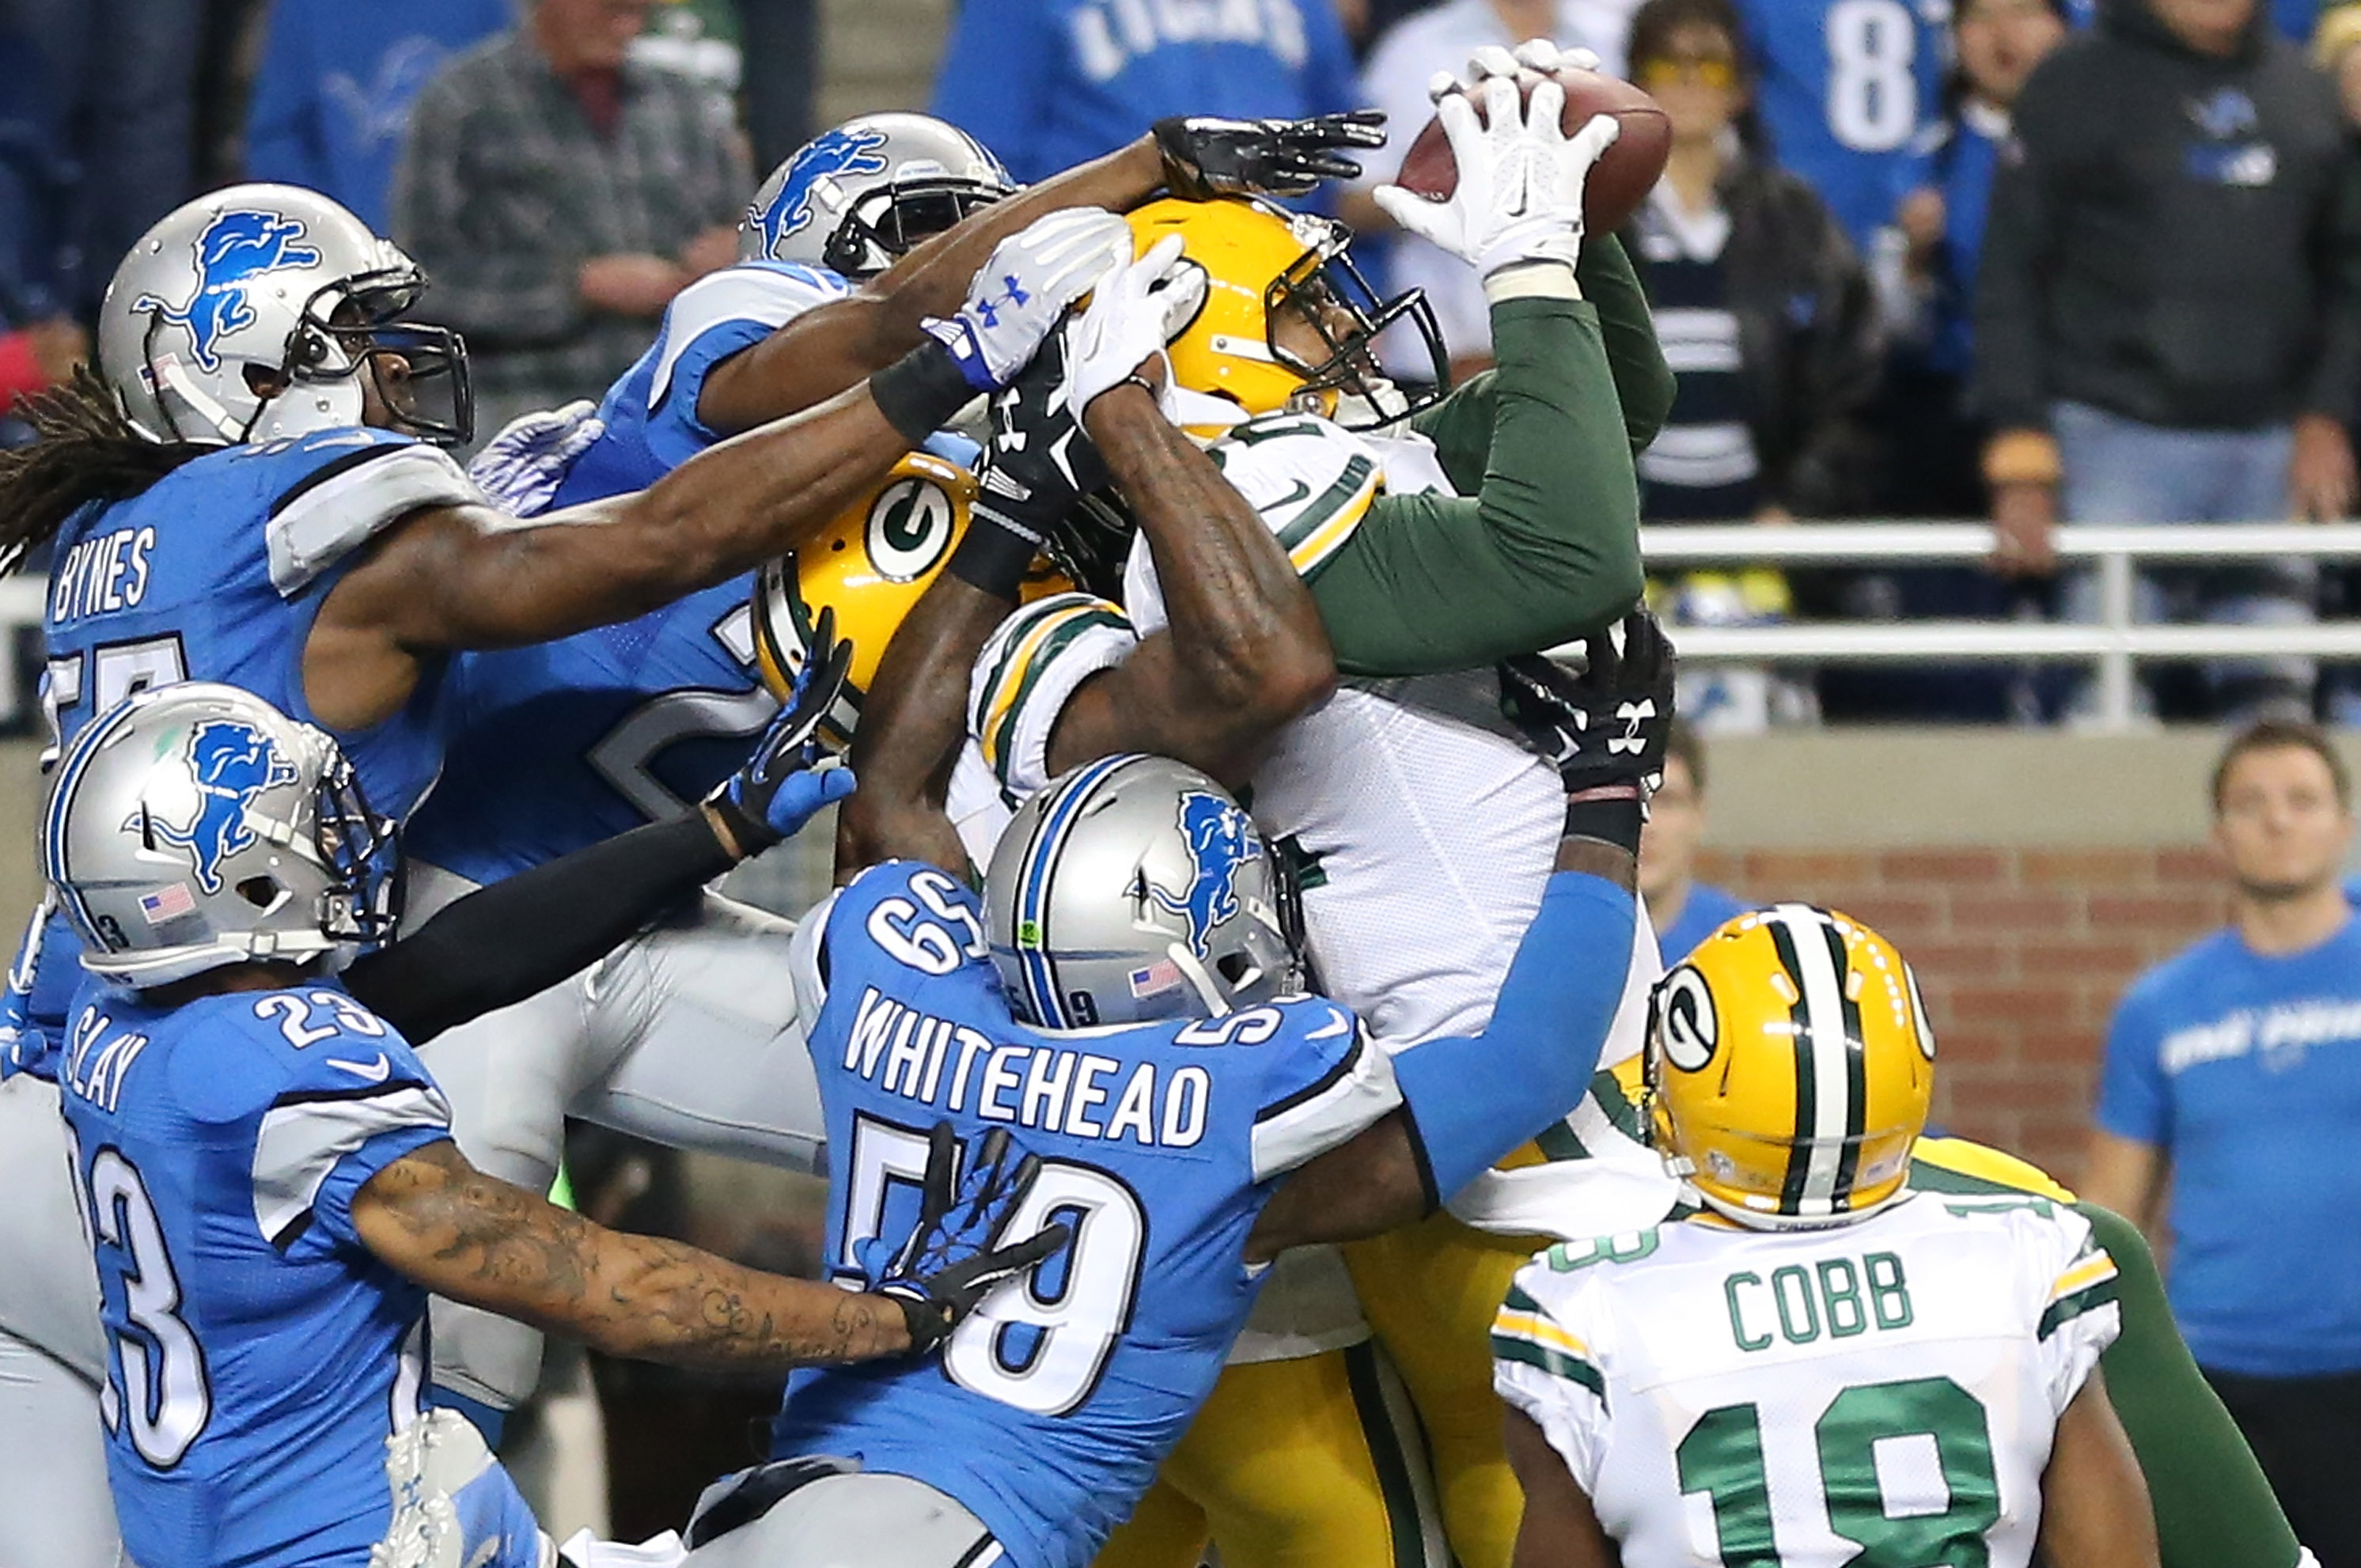 detailed look fecbc 37df6 Packers Beat Lions on Walk-Off 61-Yard Hail Mary After ...